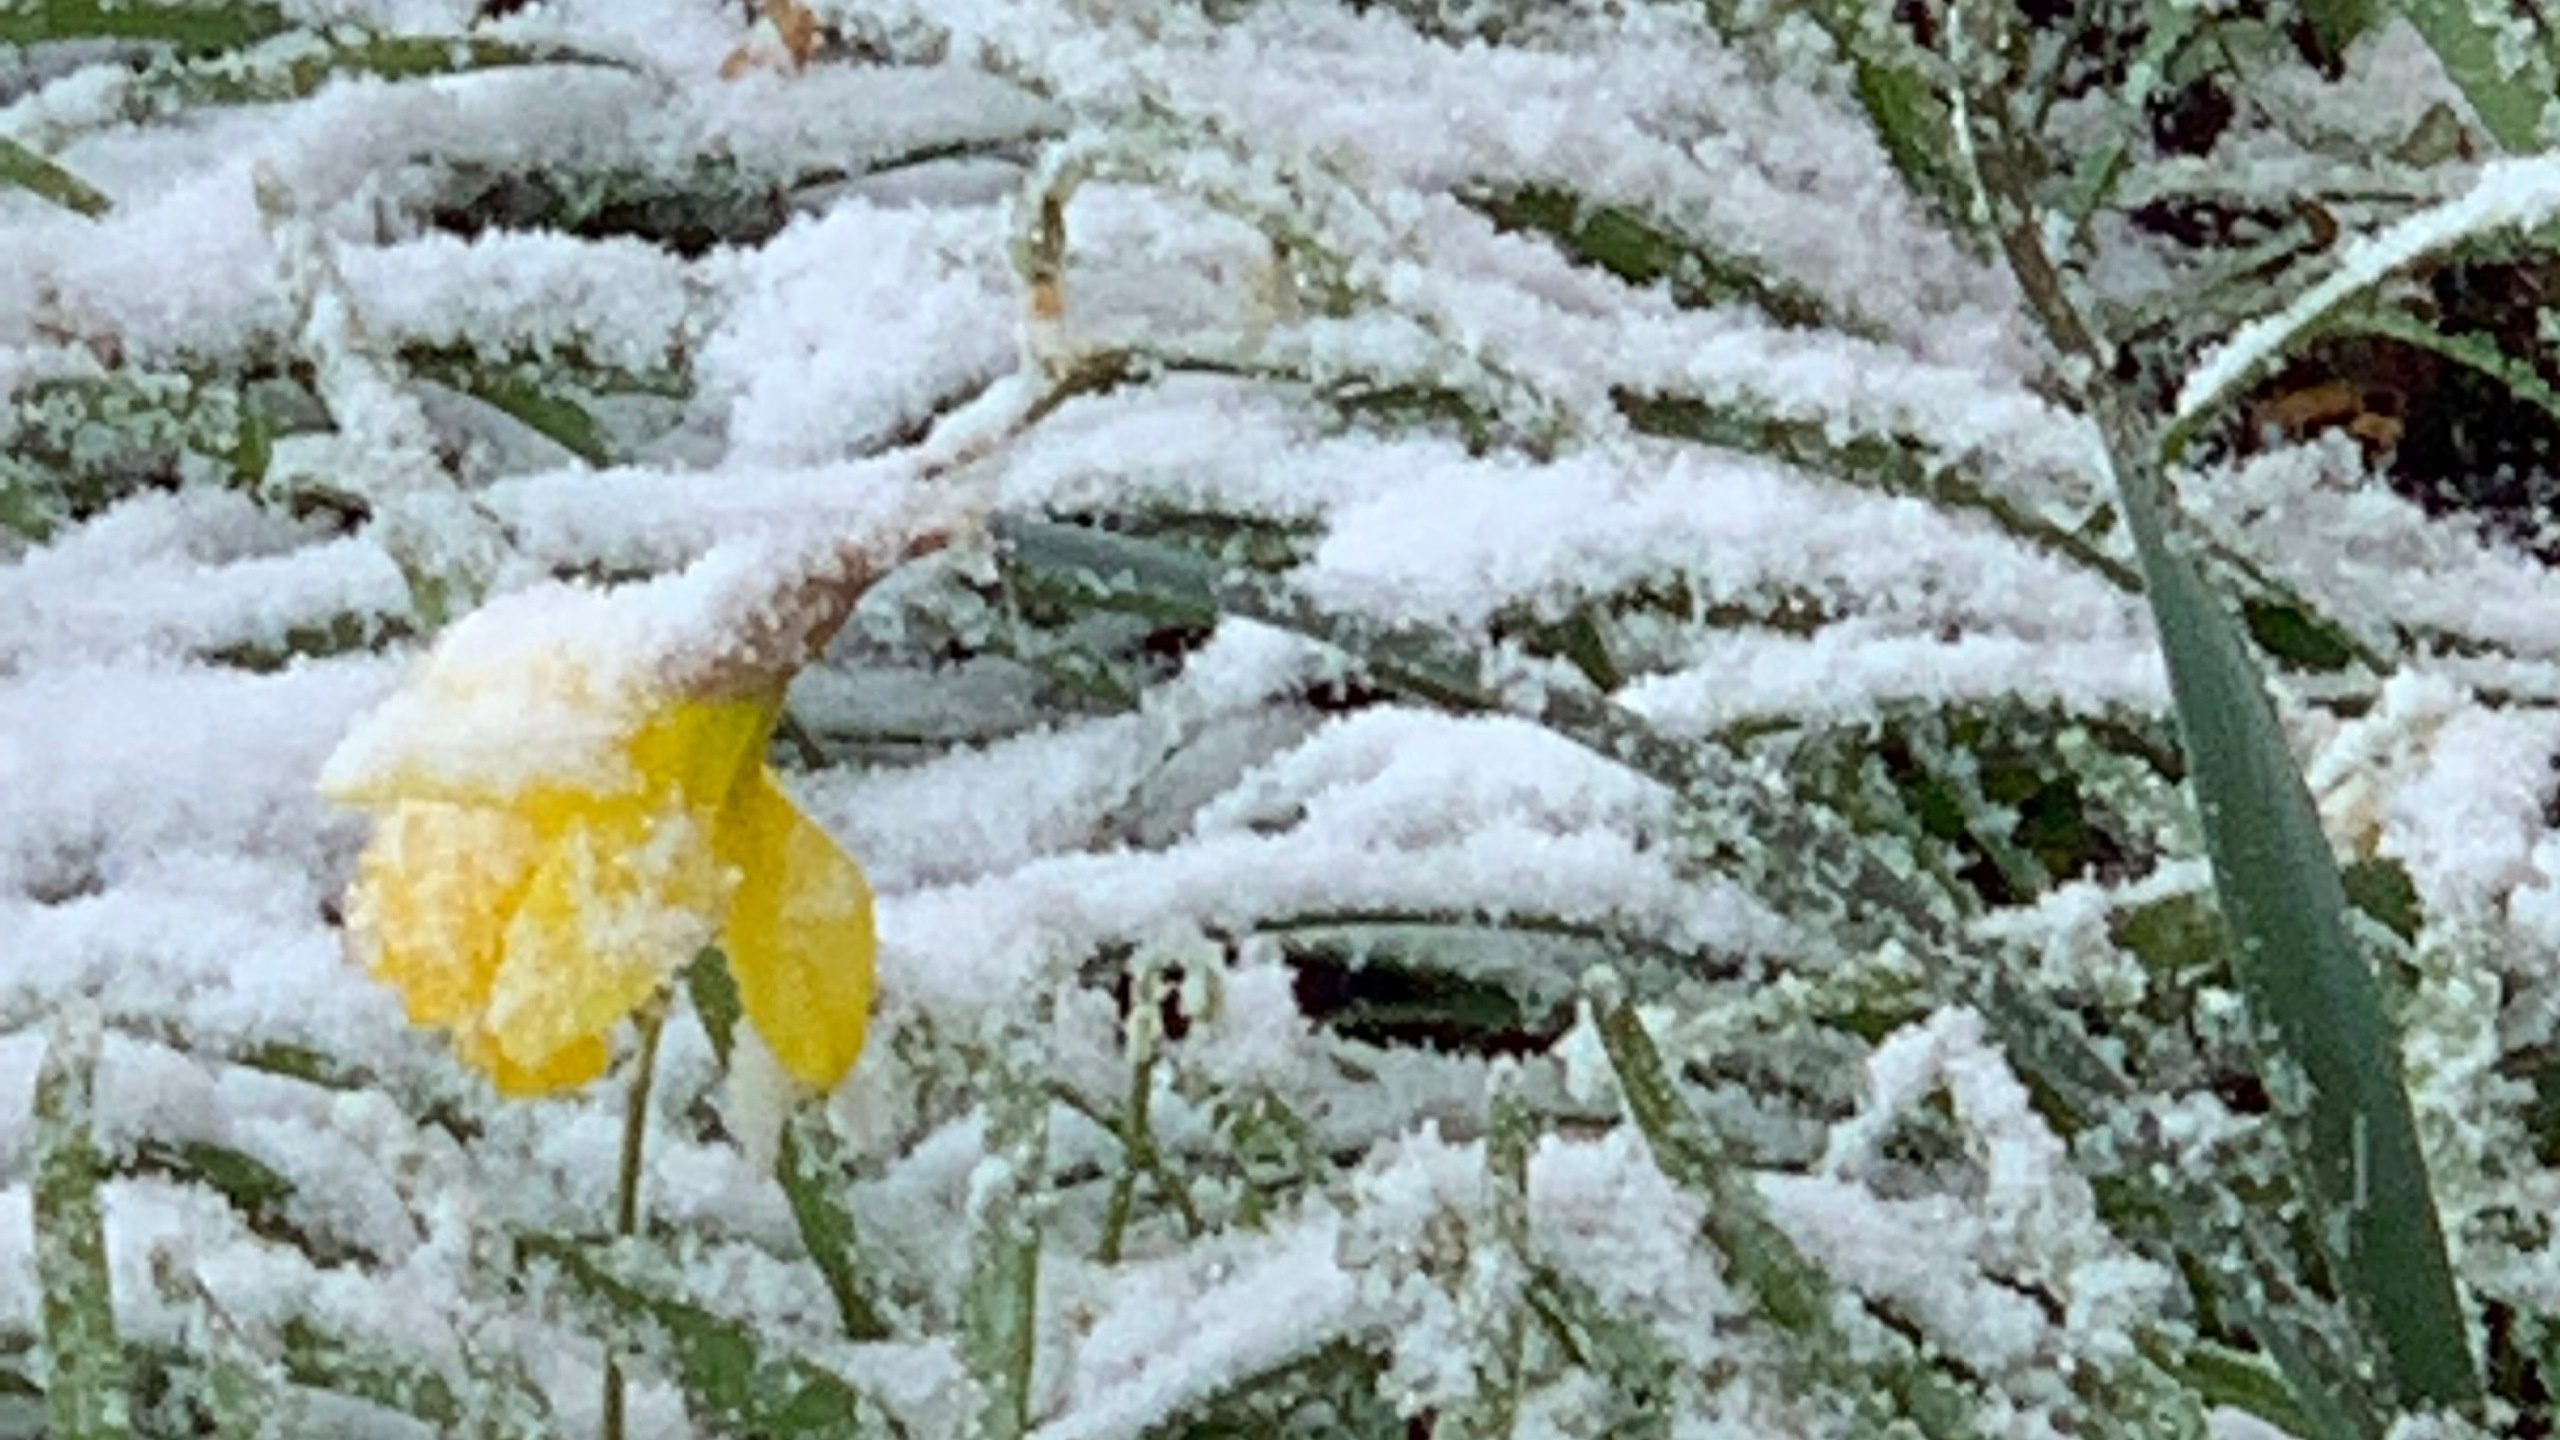 April 14 2019 snowstorm Daffodil in snow 006_1555305763363.JPG.jpg